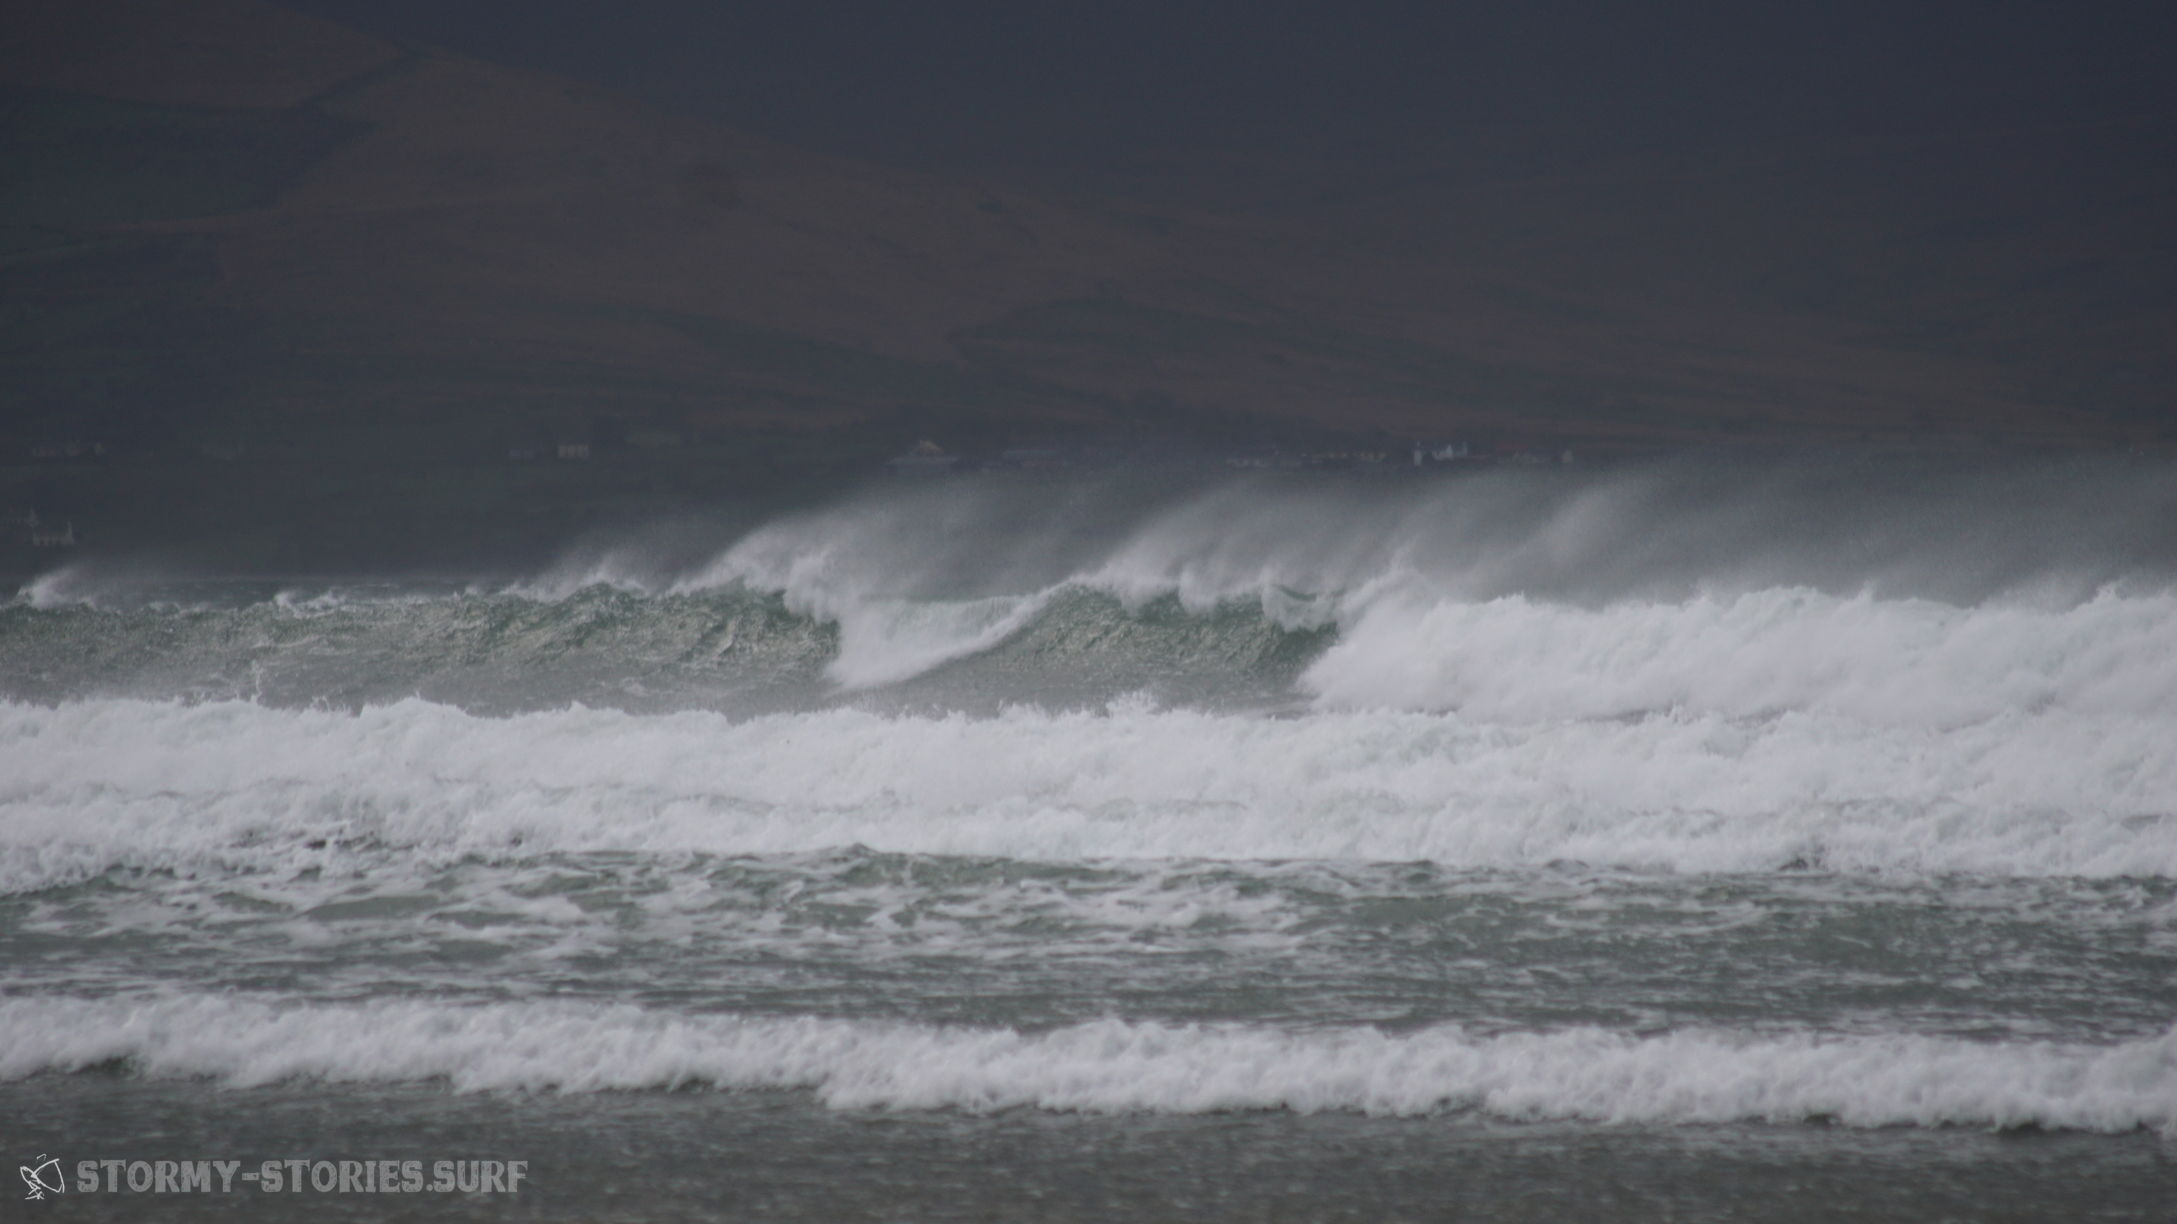 windsurf-stormy-stories-surf-travel-blog-ireland-irland-11-06-brandon-bay-stradbally-WM-35p-DSC09055